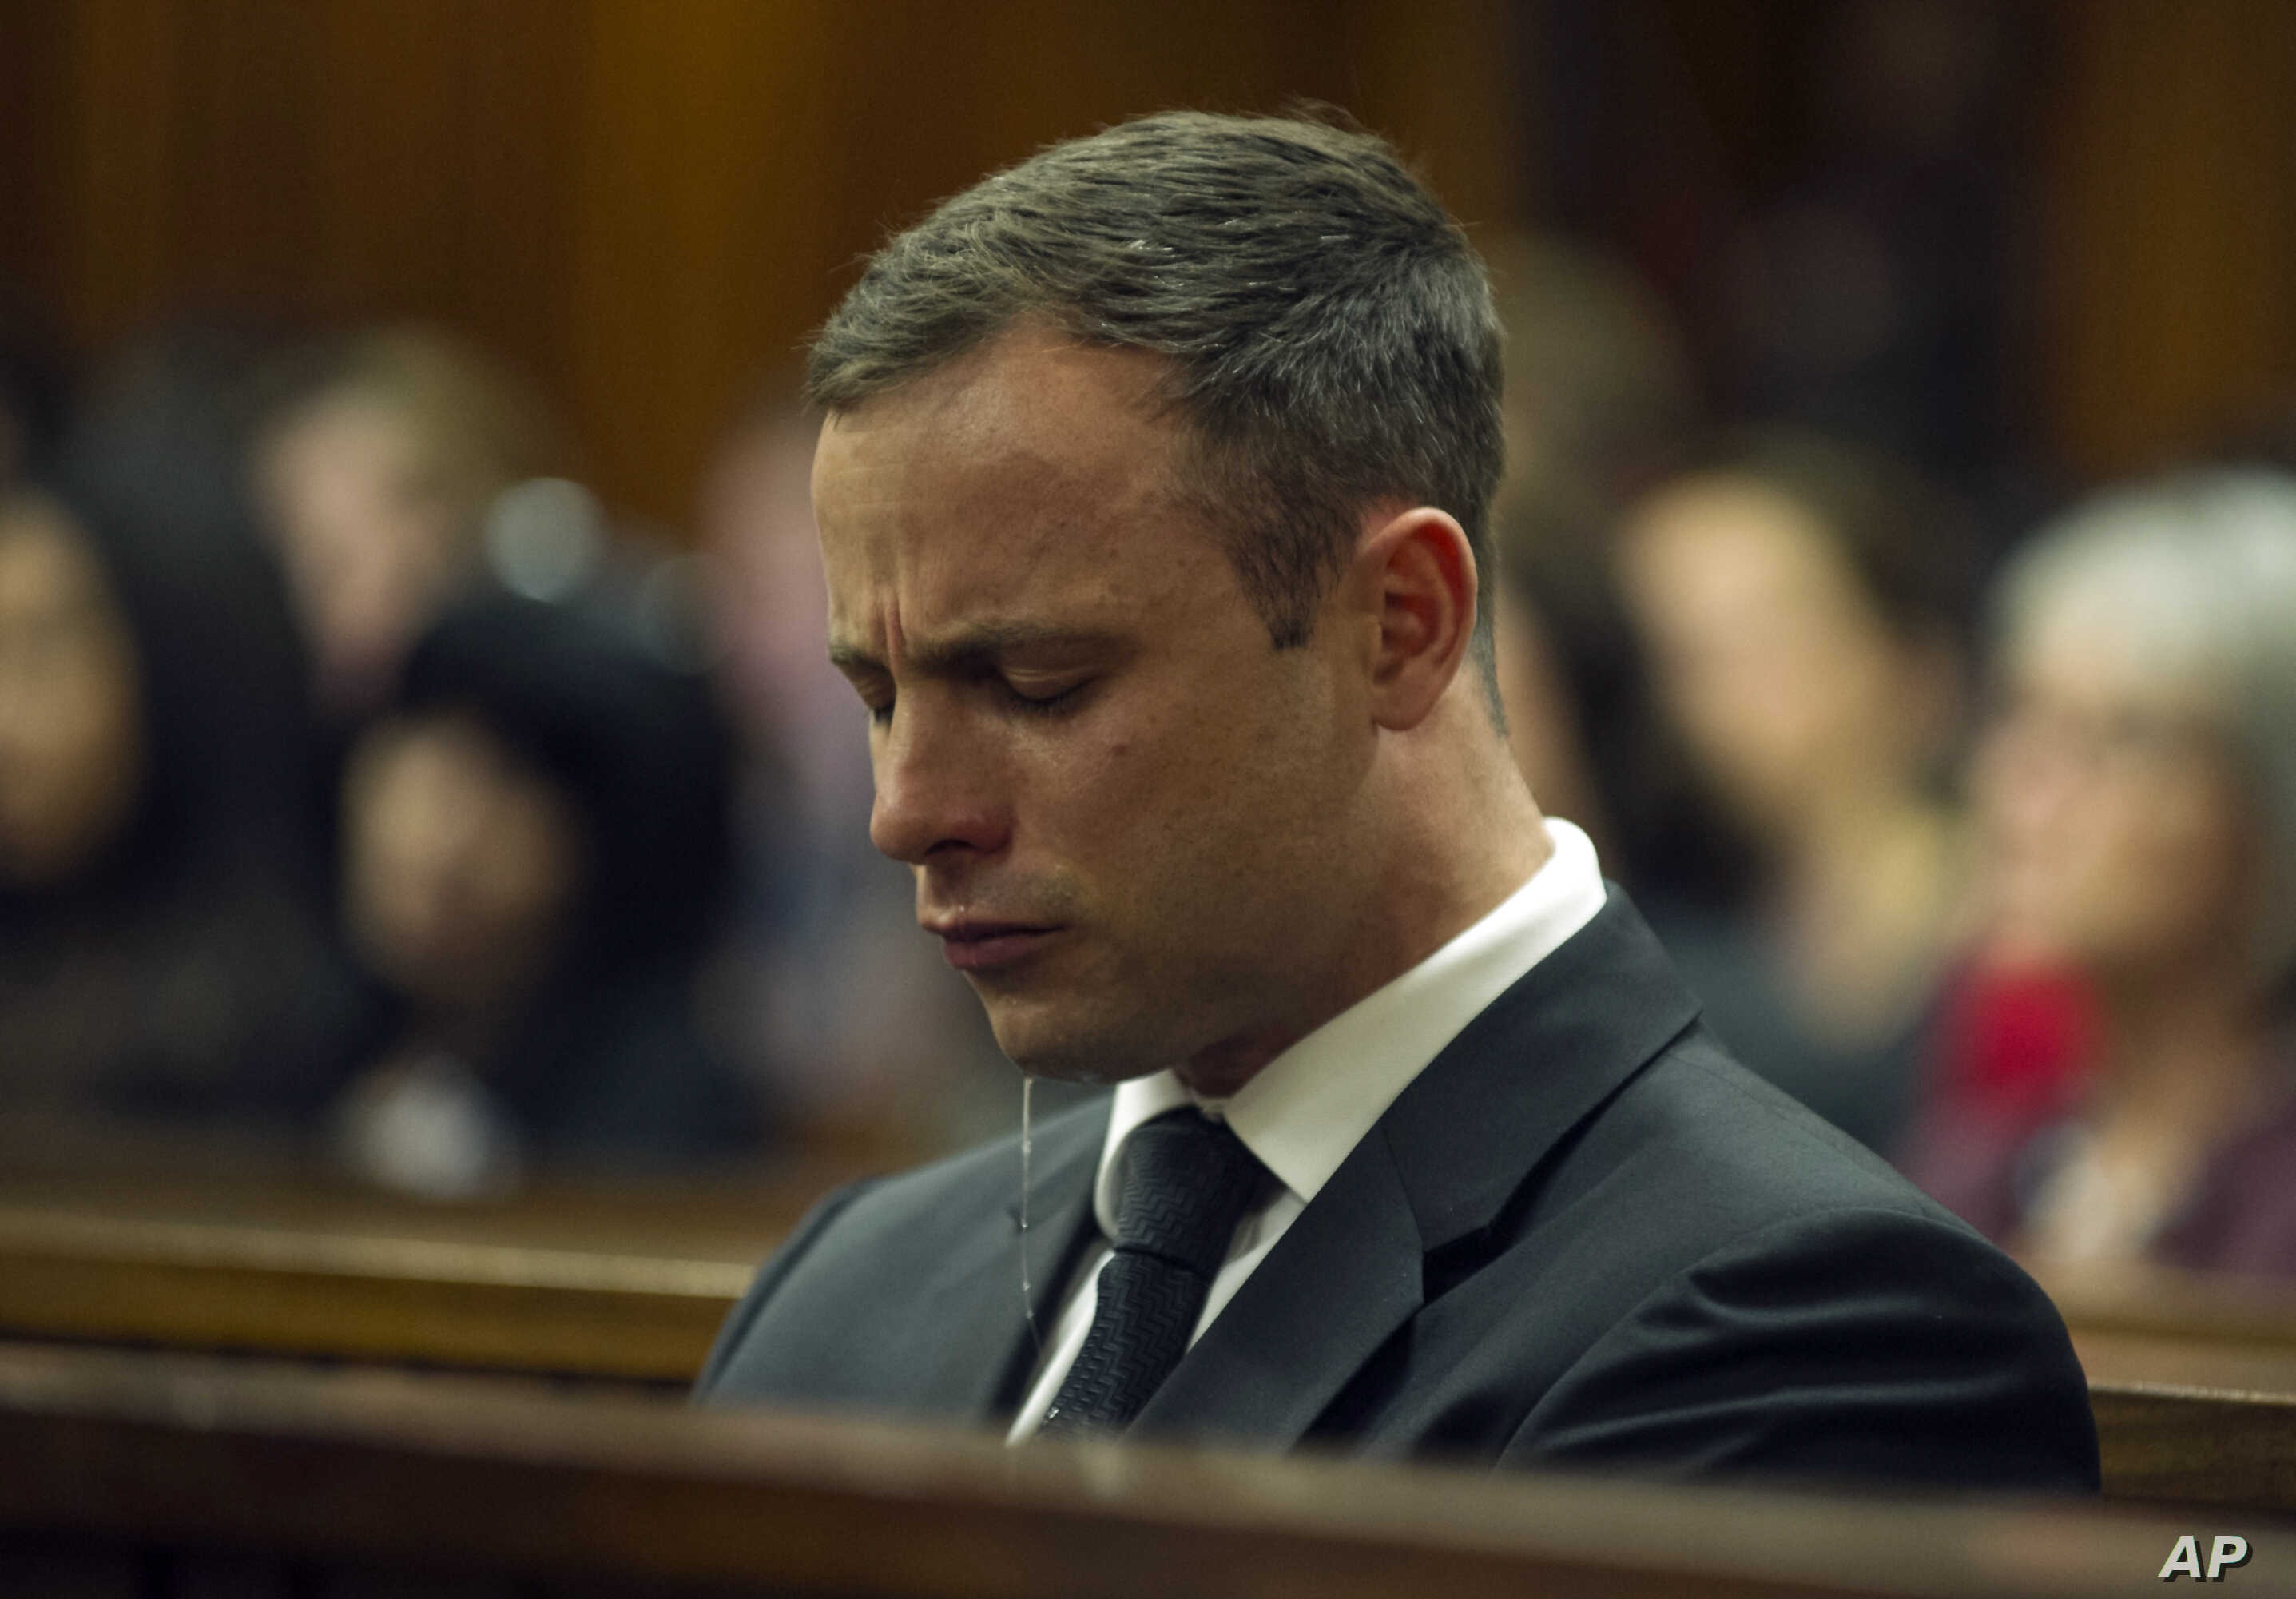 Oscar Pistorius cries in court in Pretoria, South Africa, Oct. 17, 2014 during the last day of sentencing procedures where the defense and prosecution will put their case for and against sentencing.